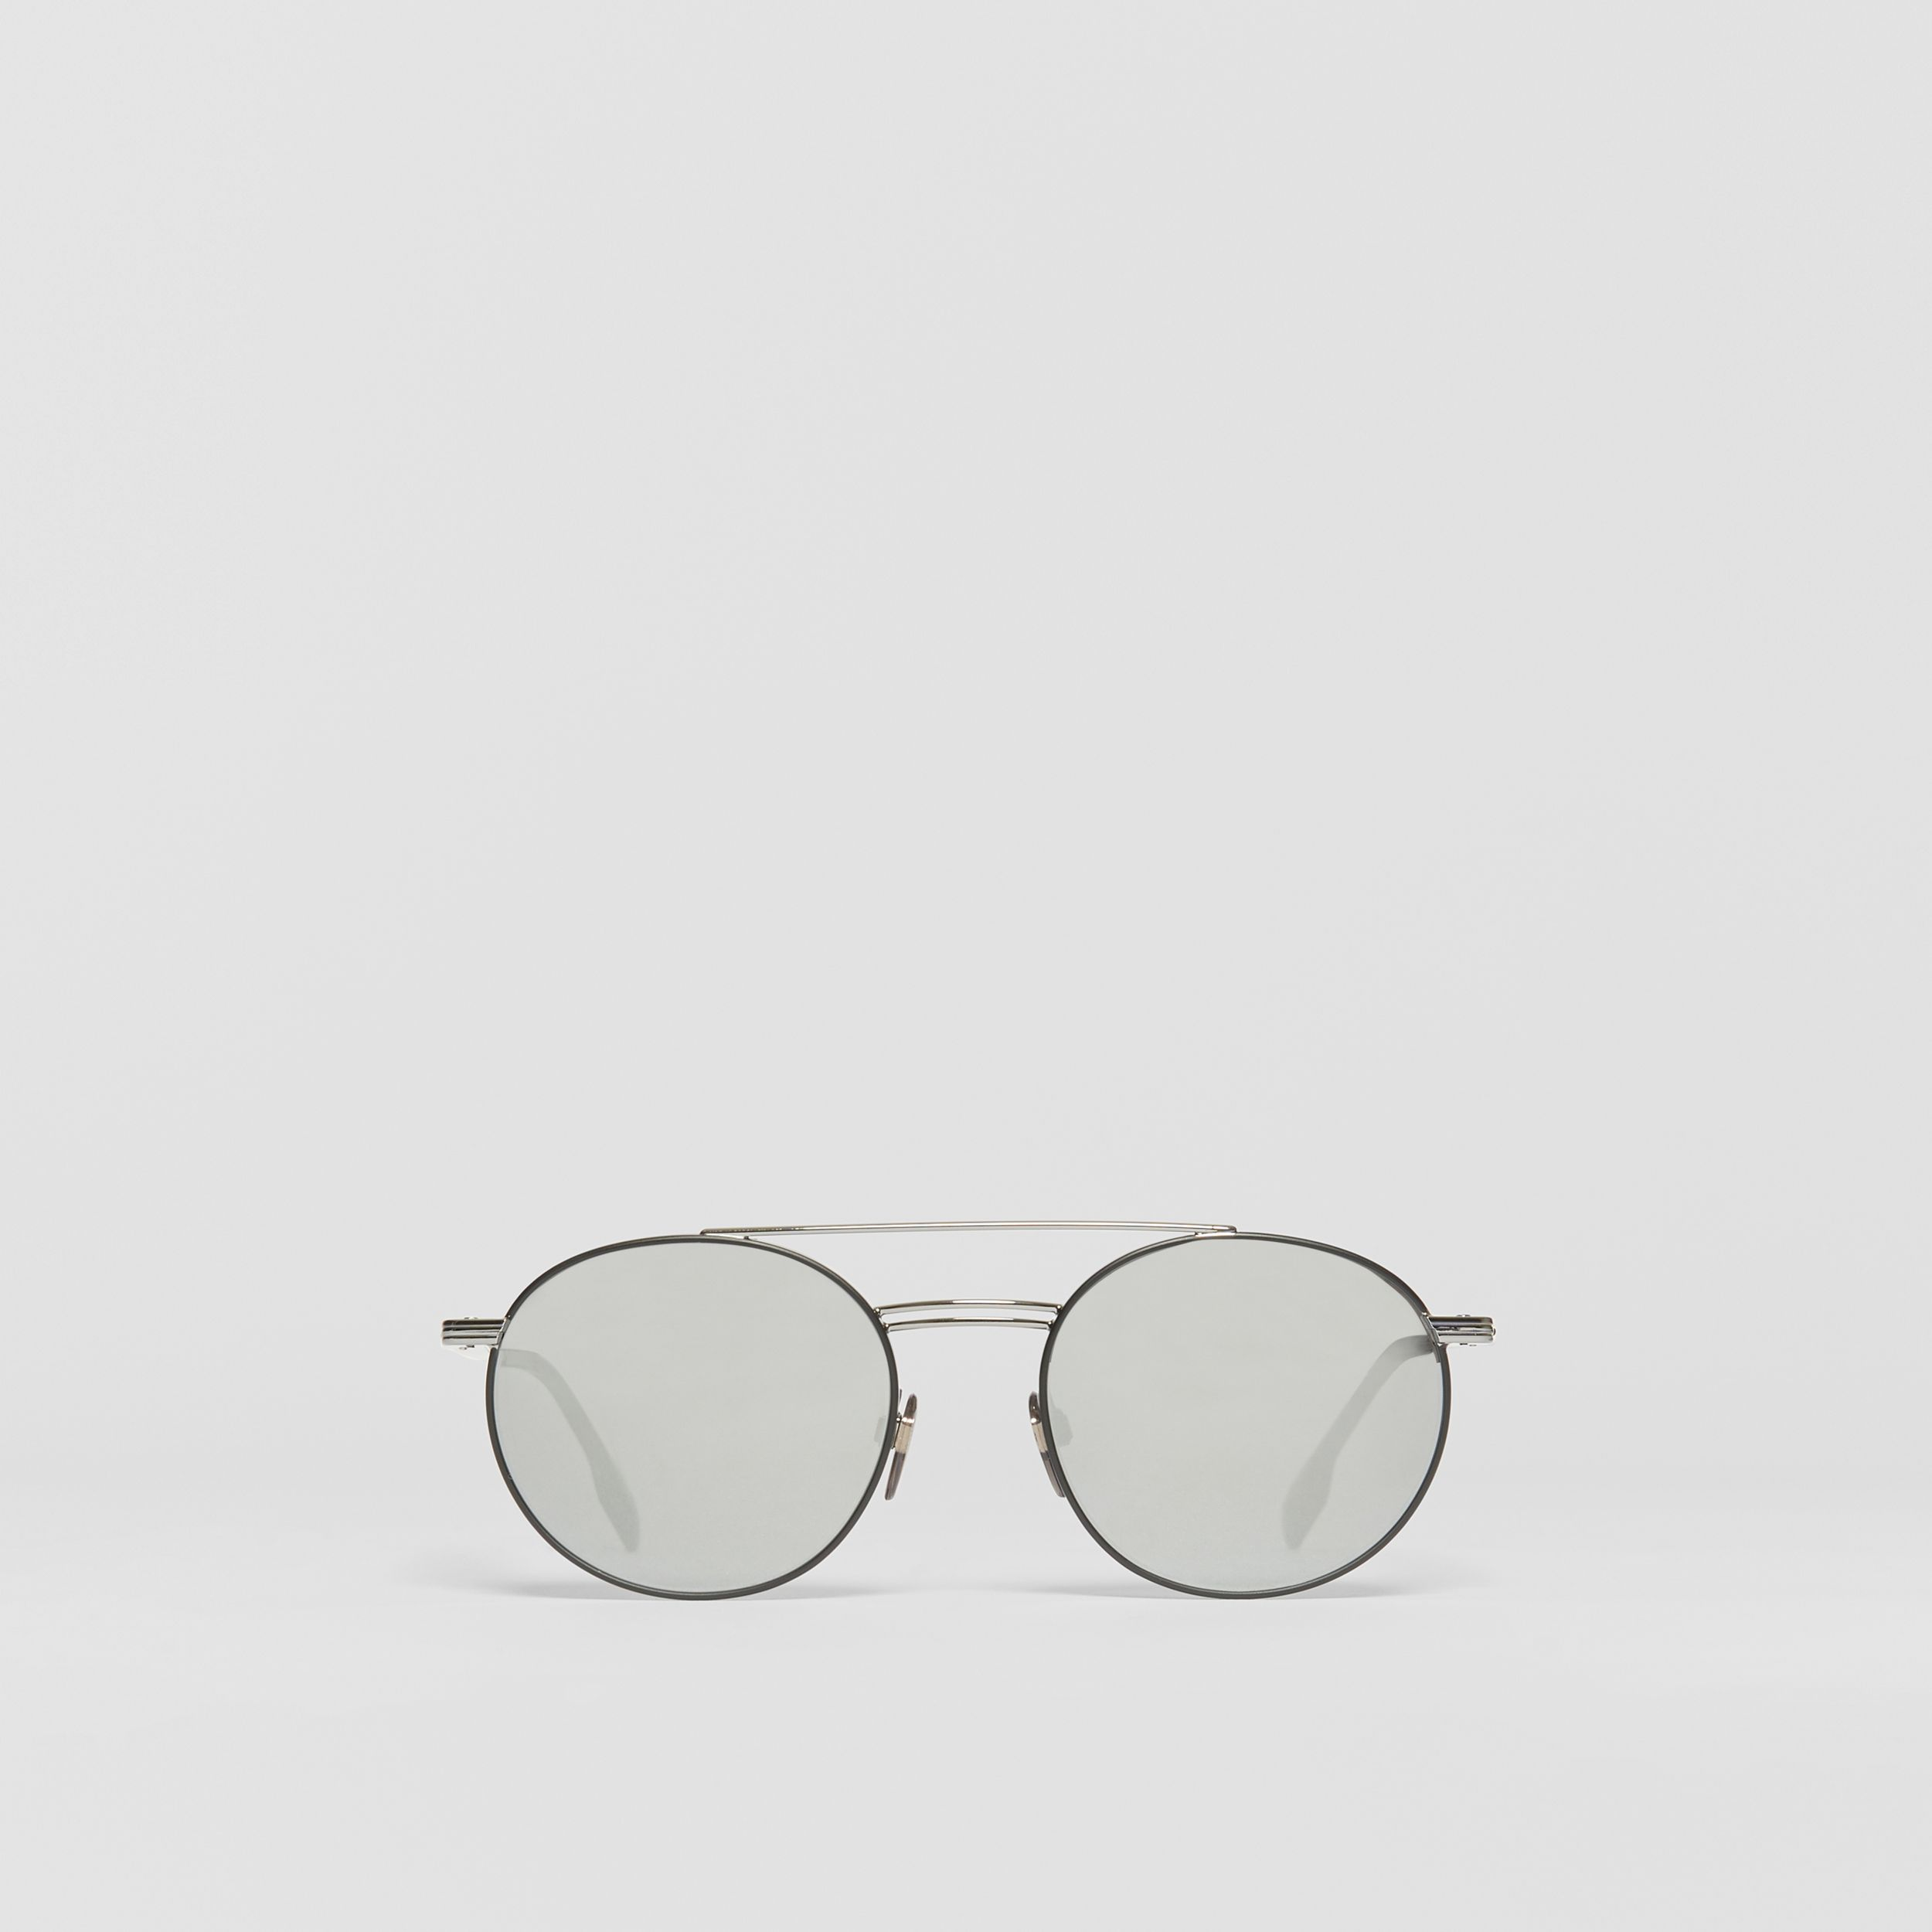 Top Bar Detail Round Frame Sunglasses in Gunmetal Grey - Men | Burberry - 1